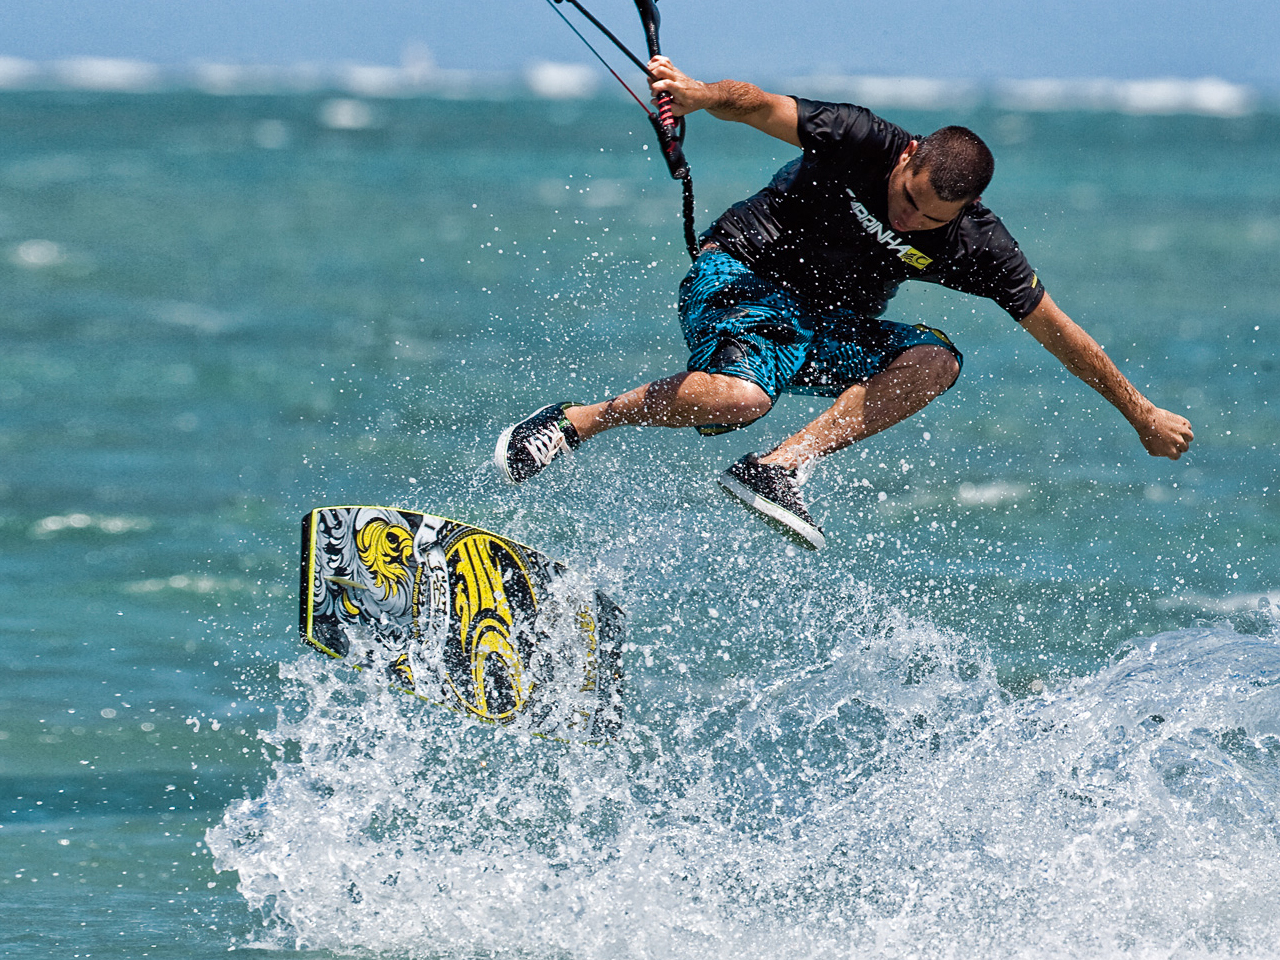 kitesurf wallpaper image - Jason on the wake skate - in resolution: Standard 4:3 1280 X 960